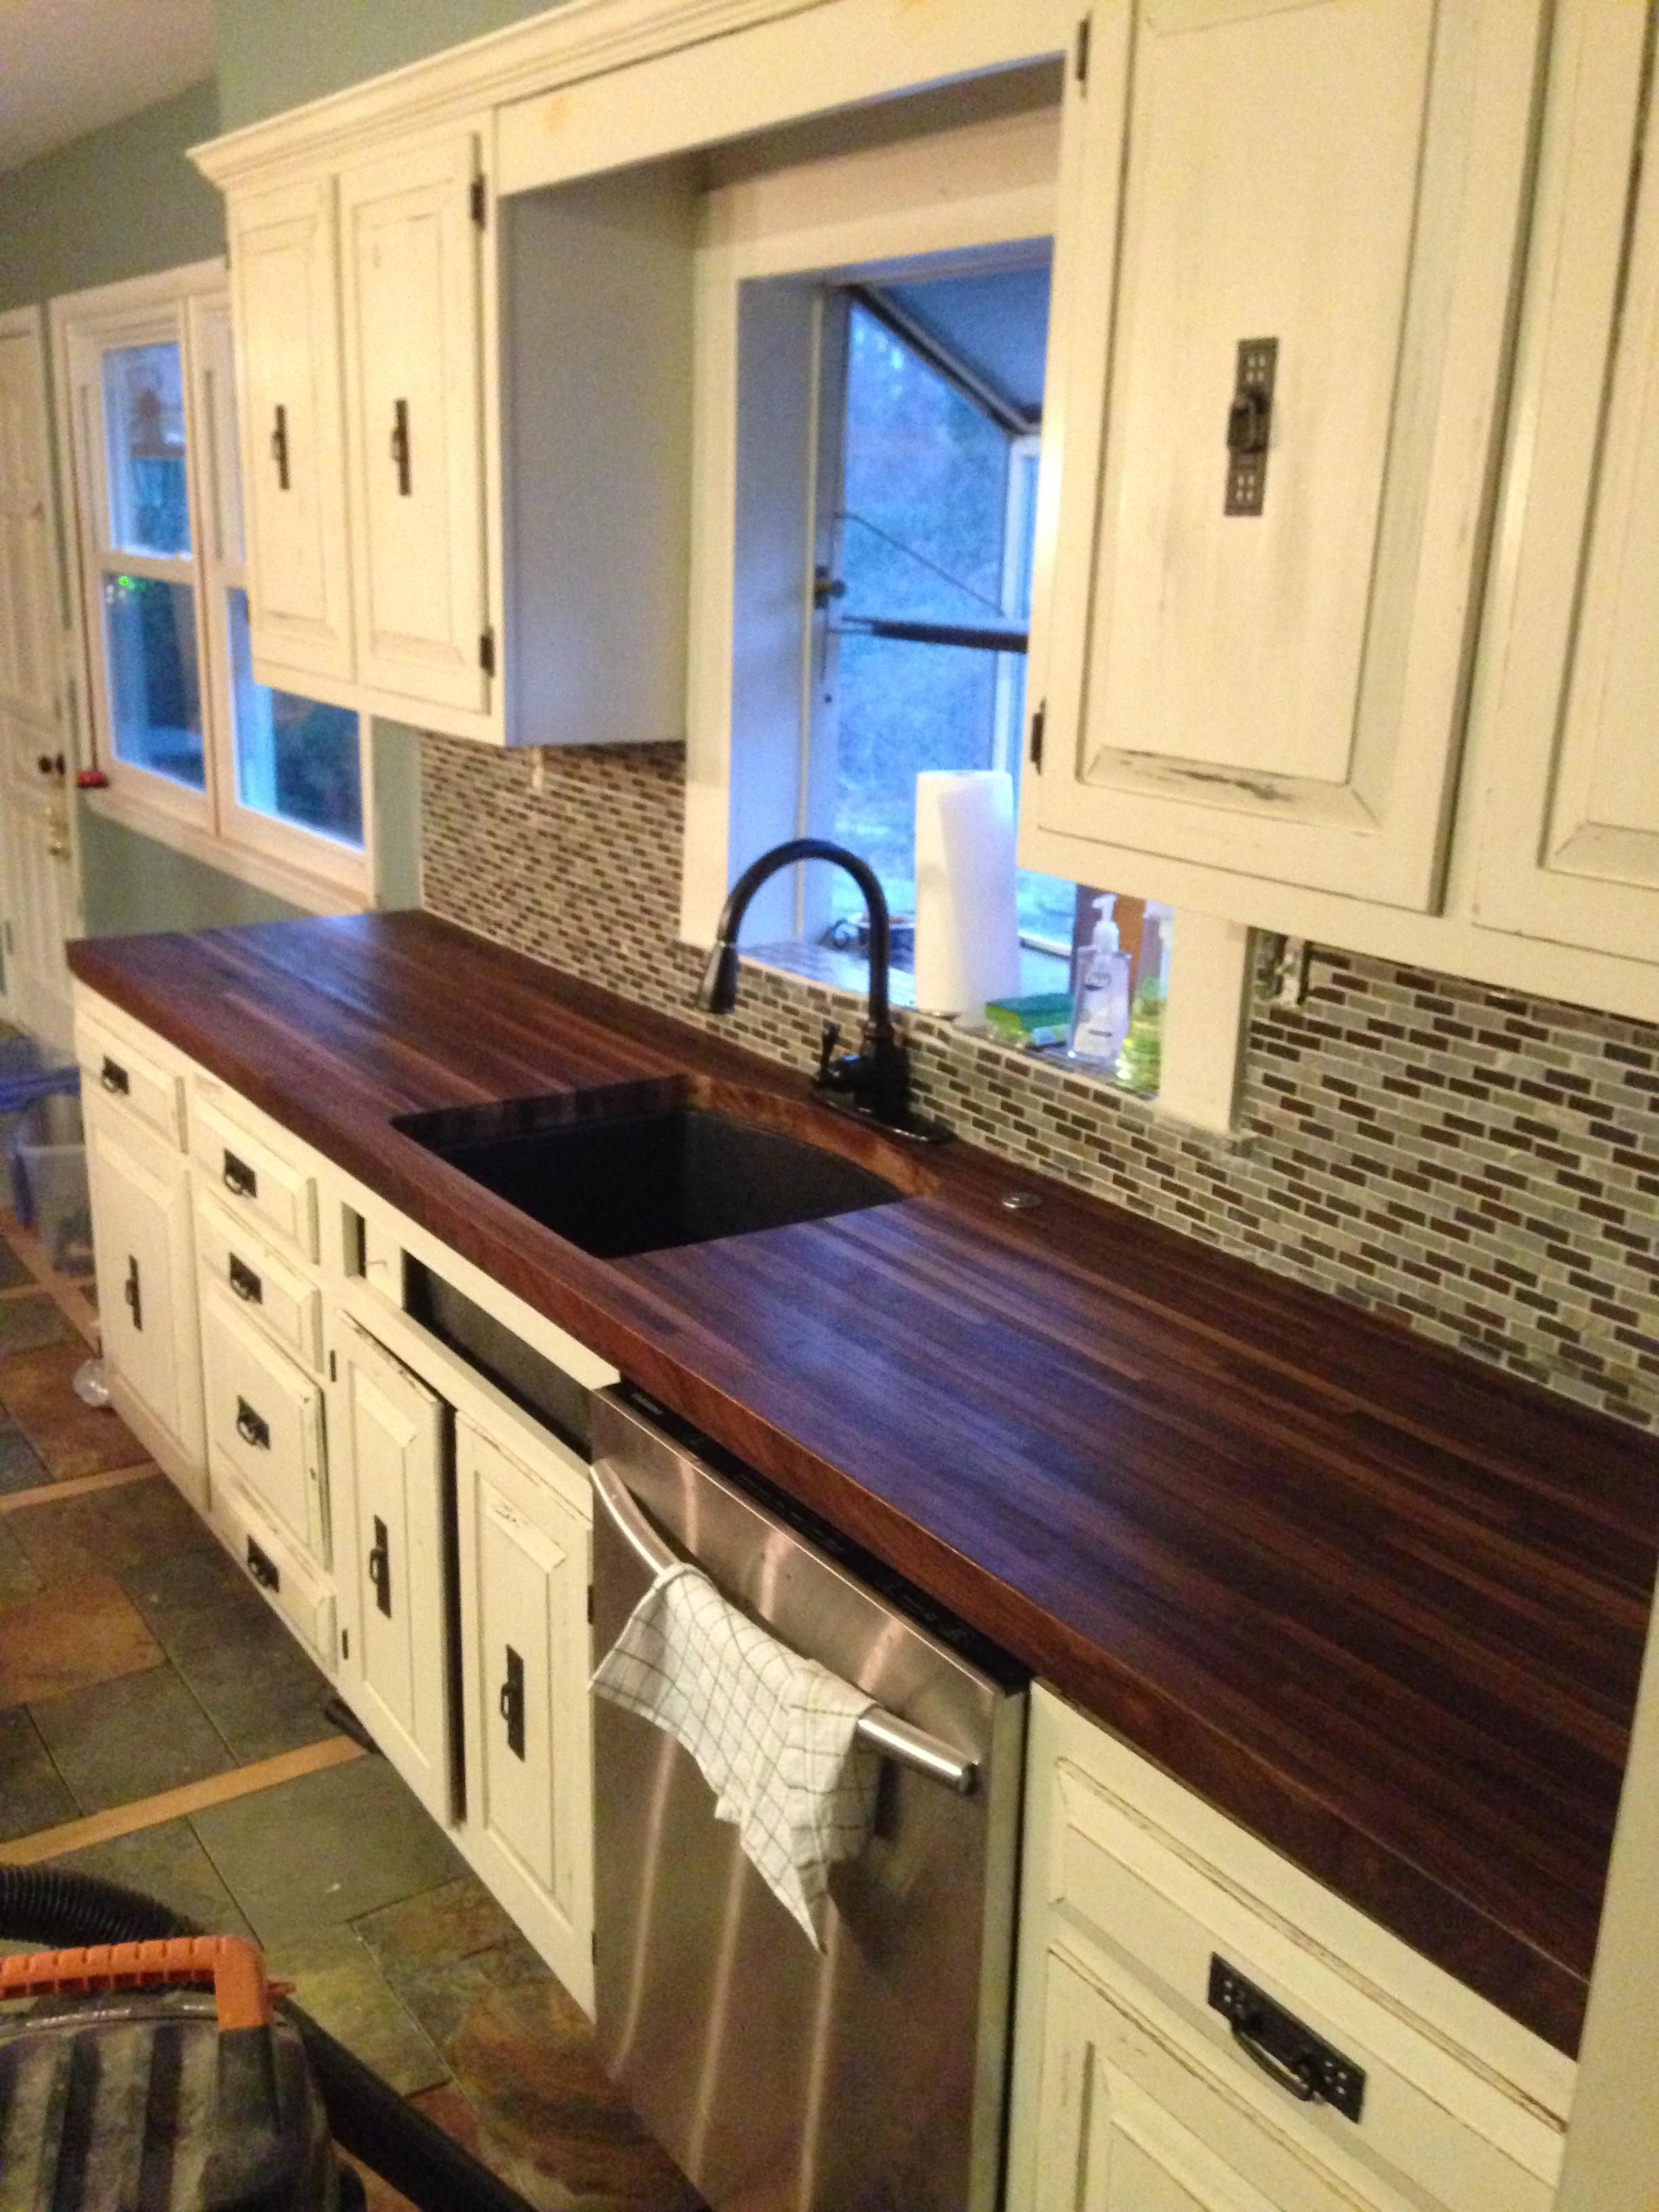 kitchen laminate refinish sterling before household countertop countertops portfolio services counter img resurface